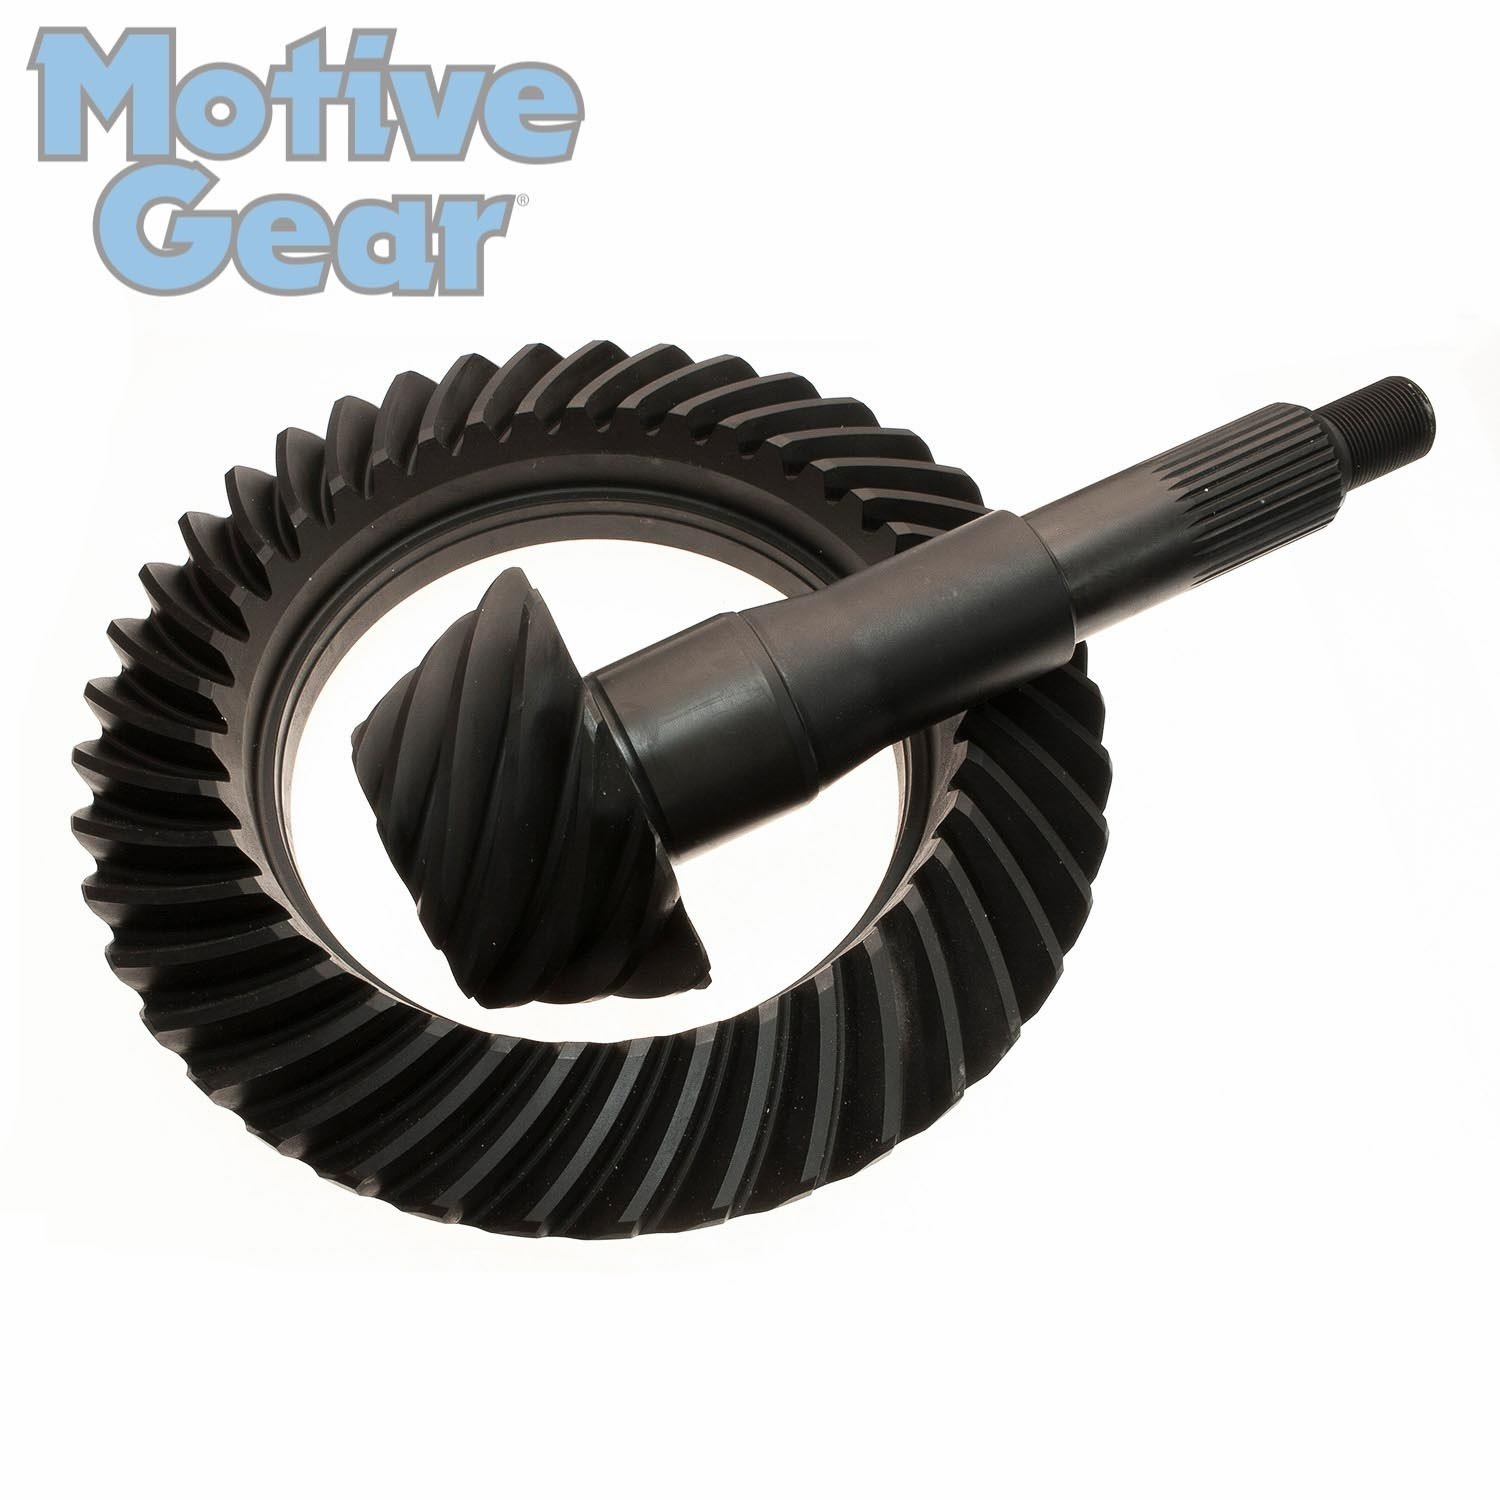 G2 Axle /& Gear 2-2046-513L G-2 Performance Ring and Pinion Set